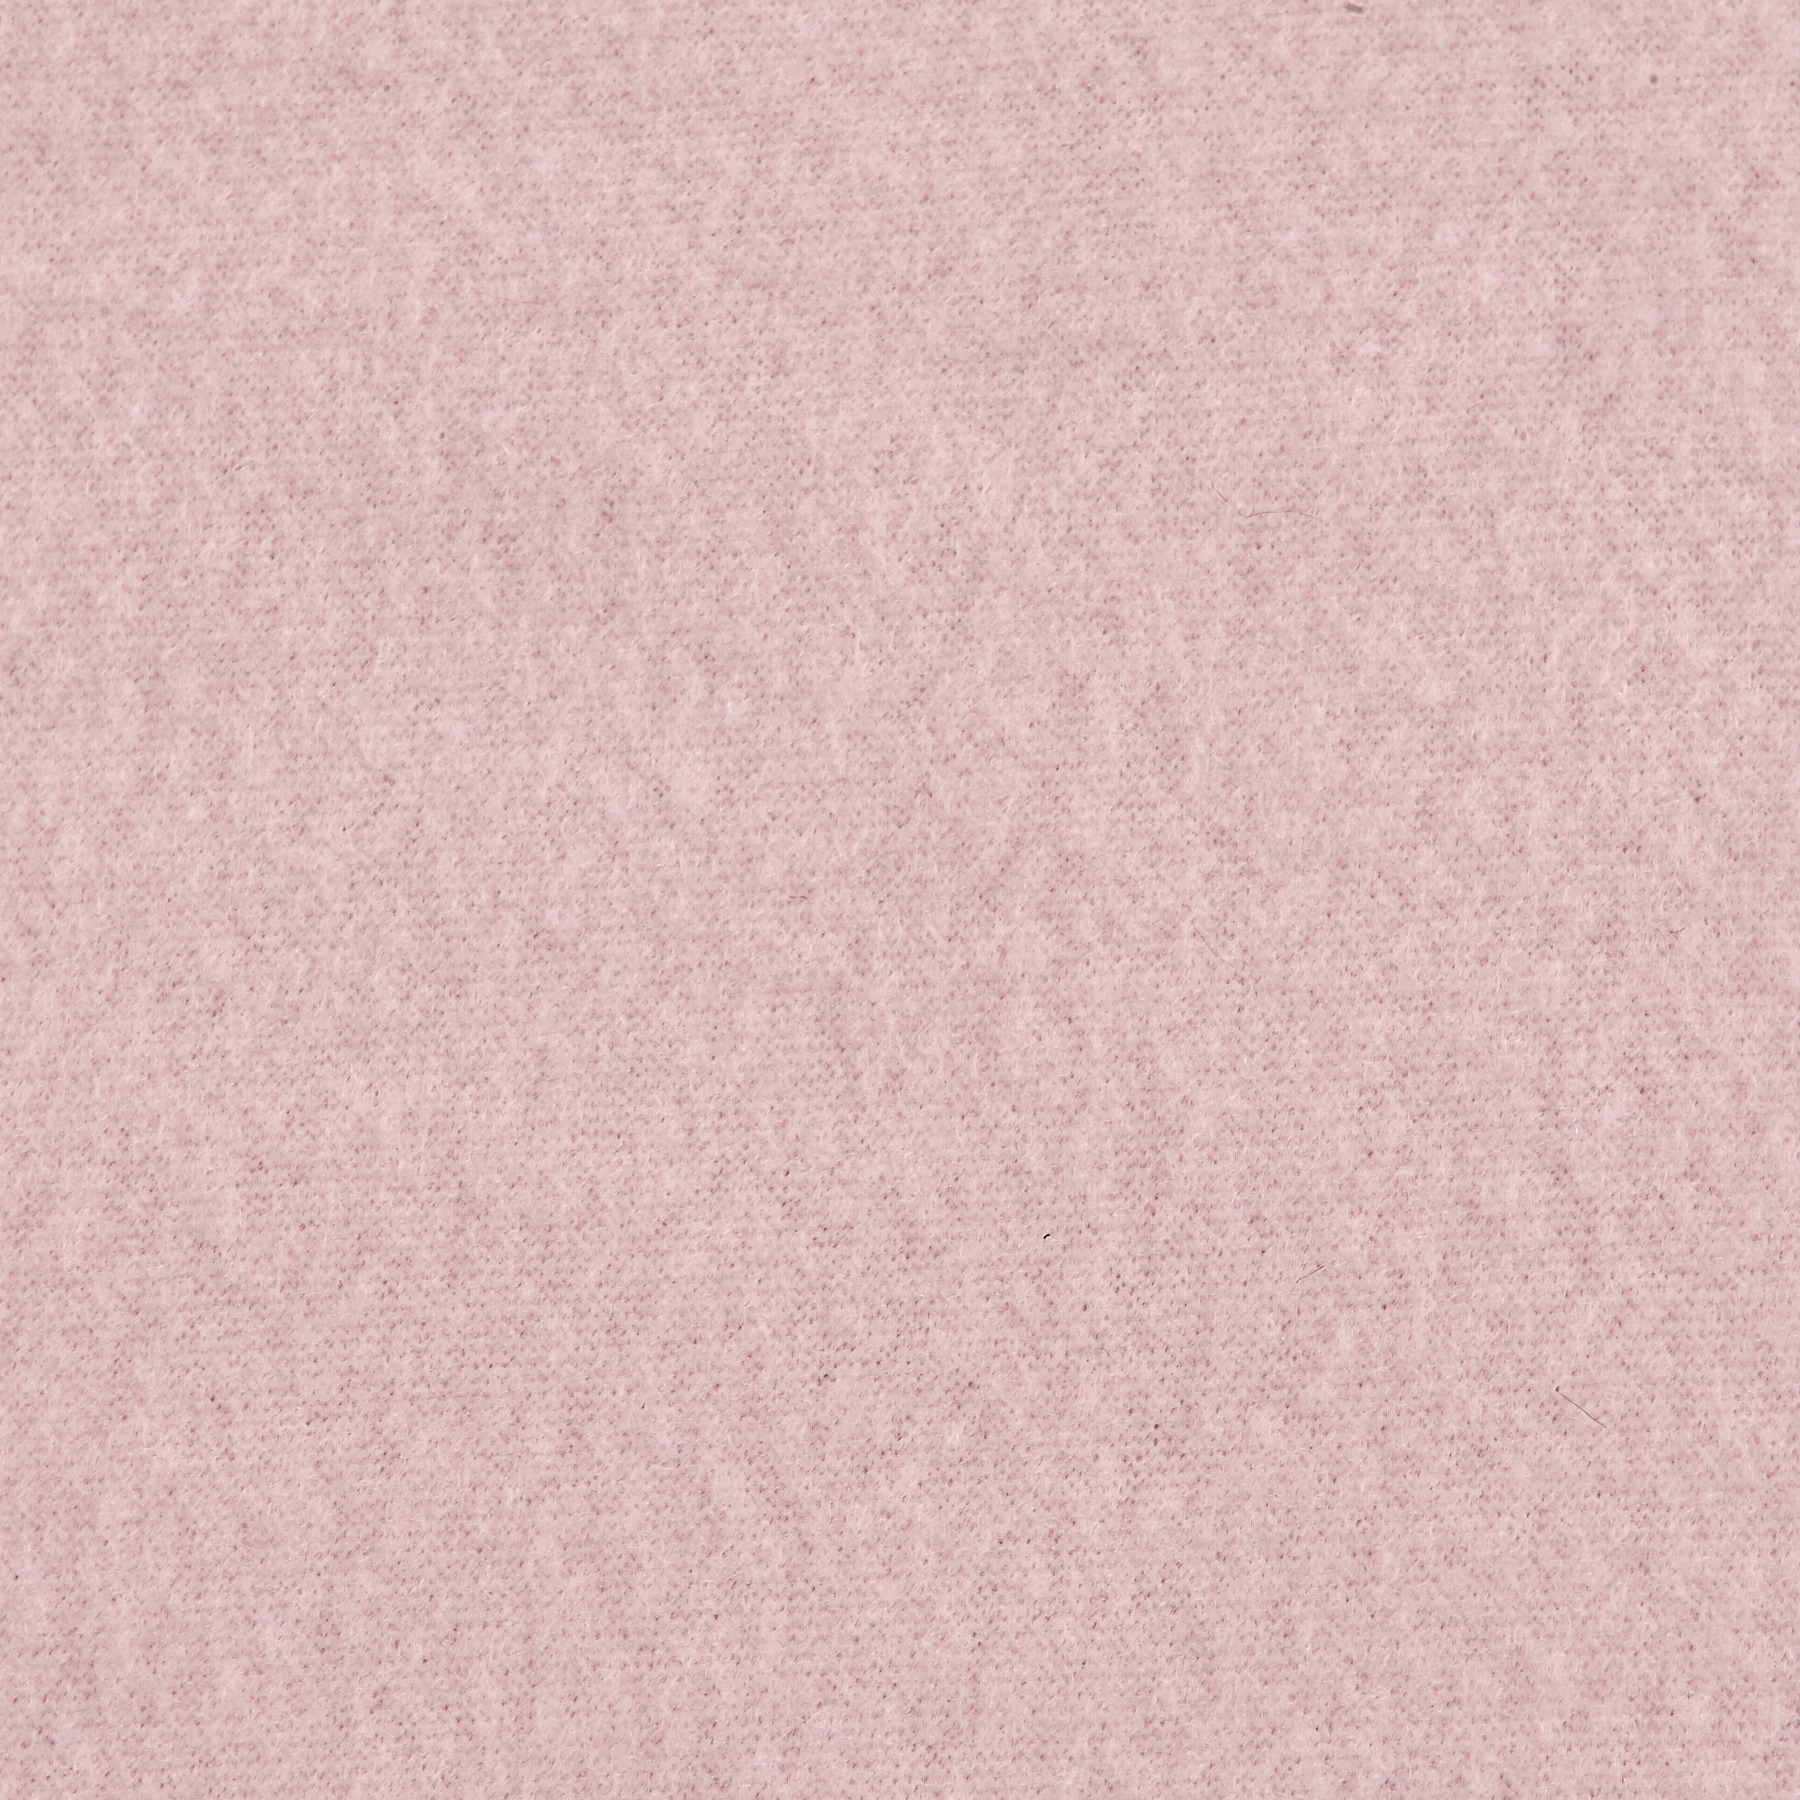 Solid Fleece Cotton Candy Pink Fabric by Textile Creations in USA